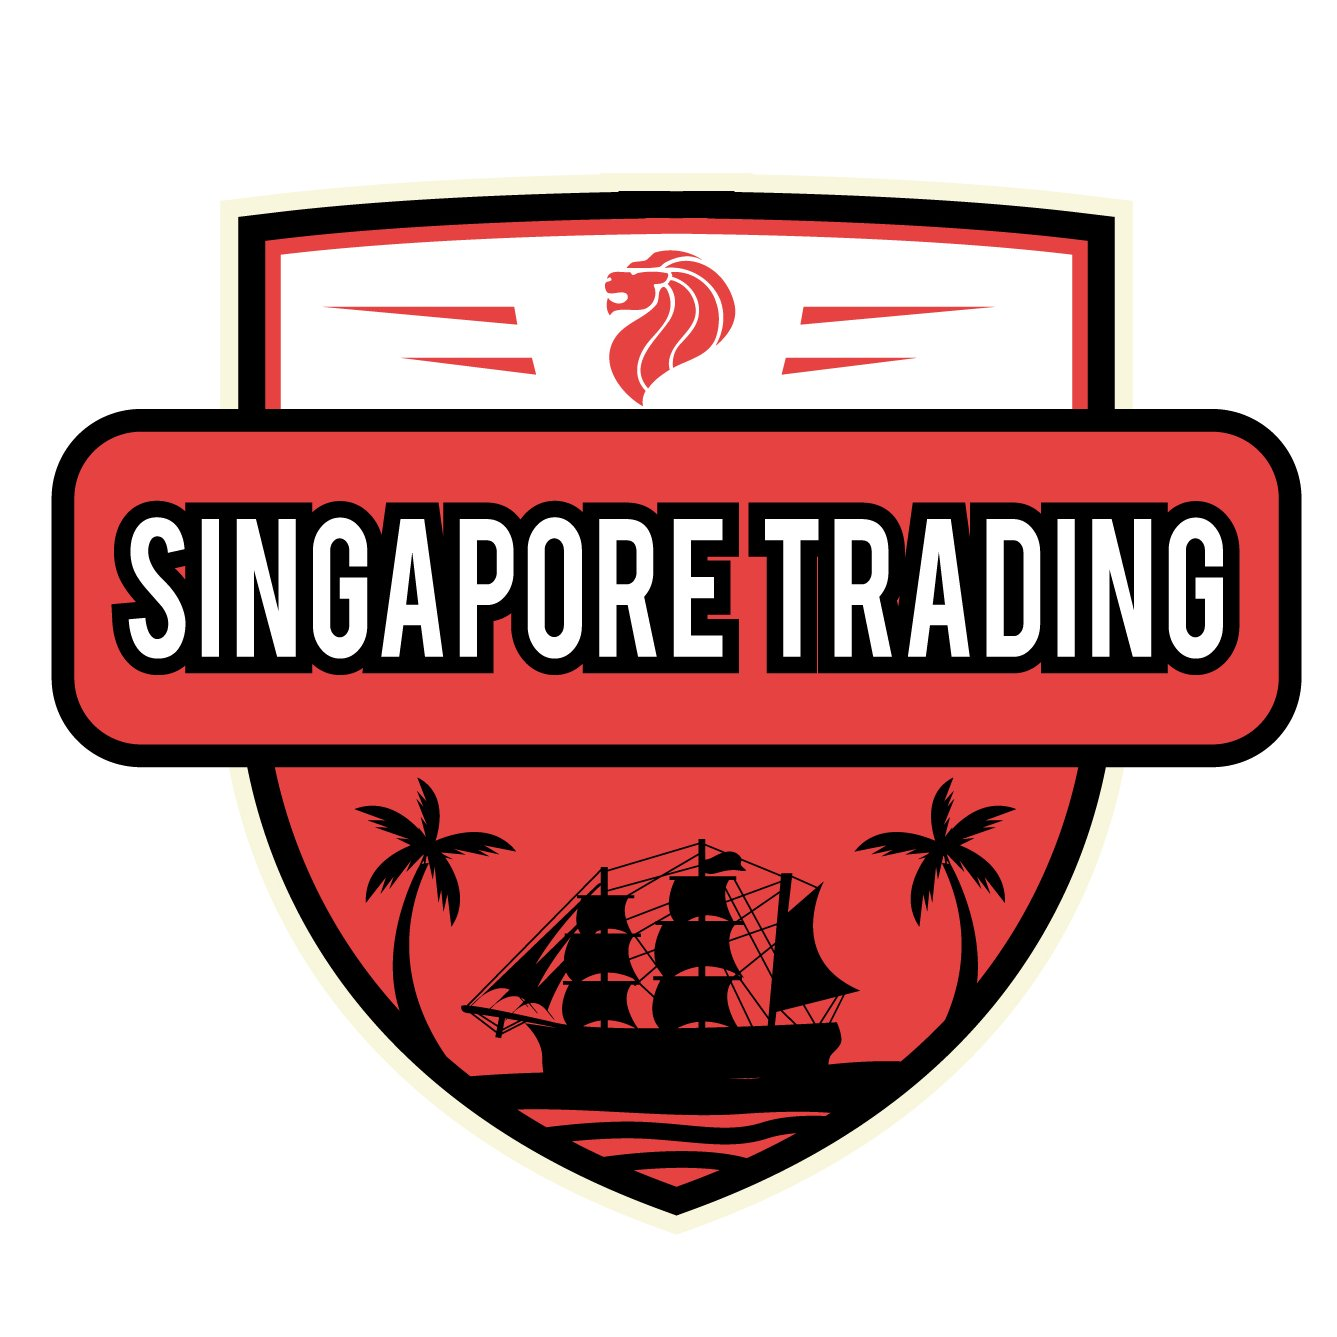 Does singapore tax forex traders